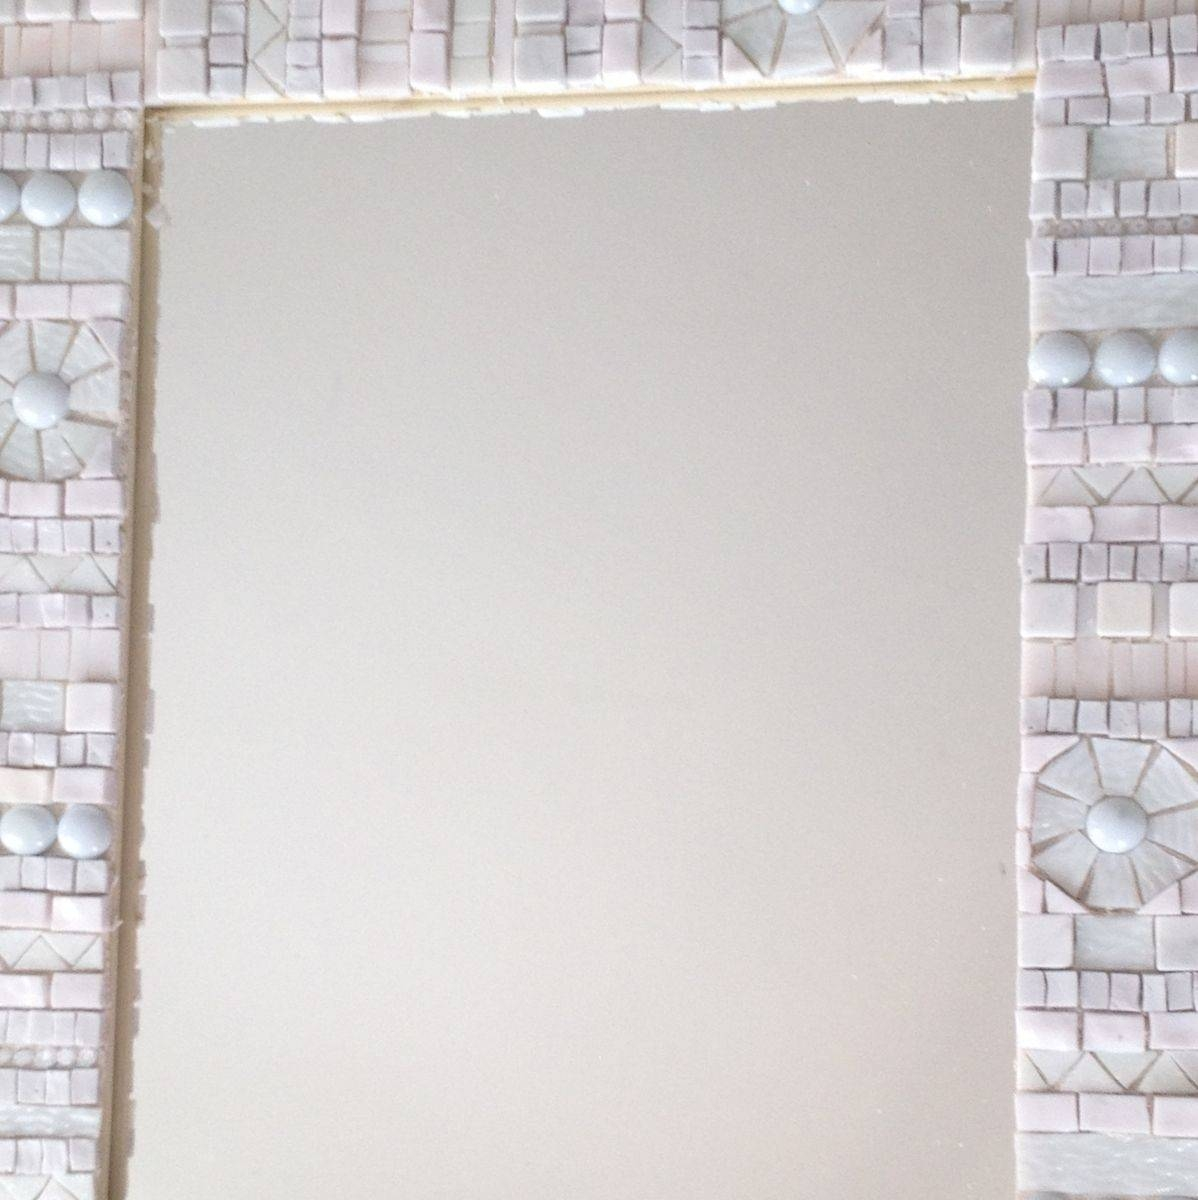 Hand Crafted Mosaic Decorative Wall Mirrorlive In Mosaics with regard to Mosaic Wall Mirrors (Image 11 of 25)